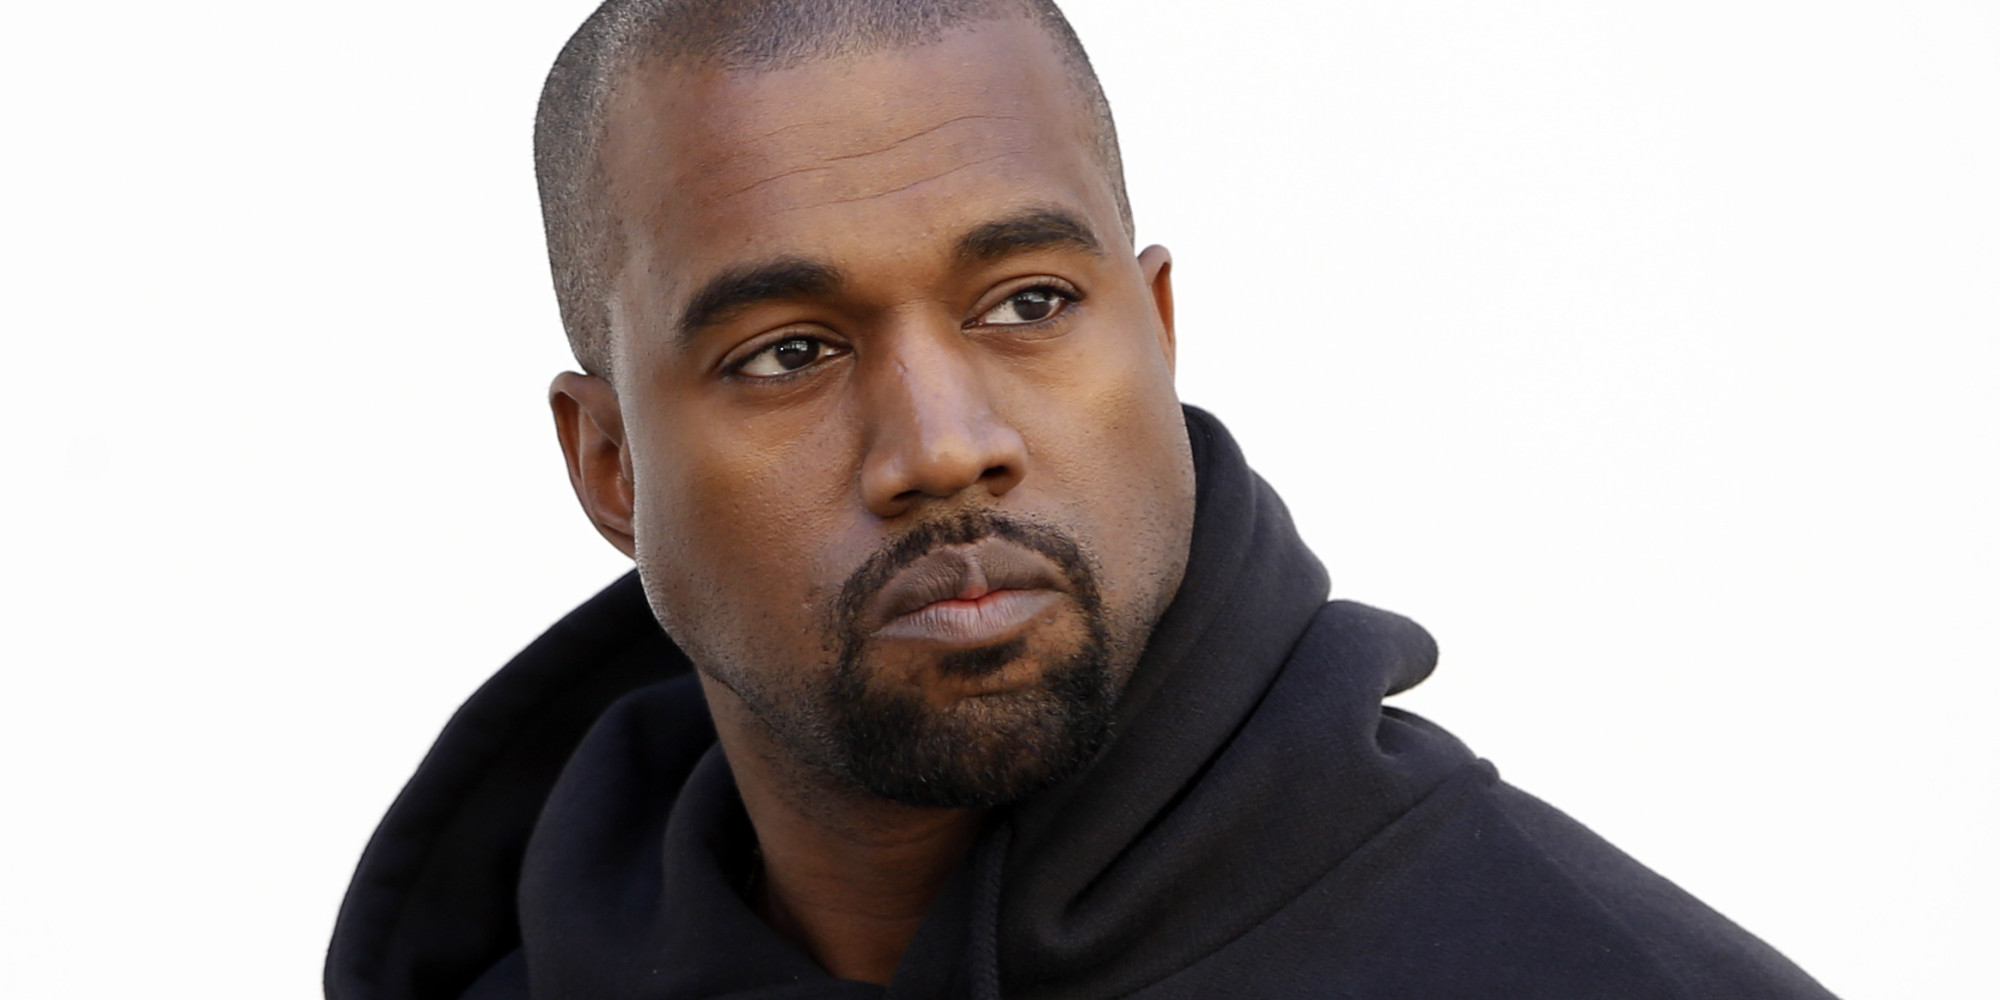 7 Reasons Kanye West Deserves To Be President | HuffPost